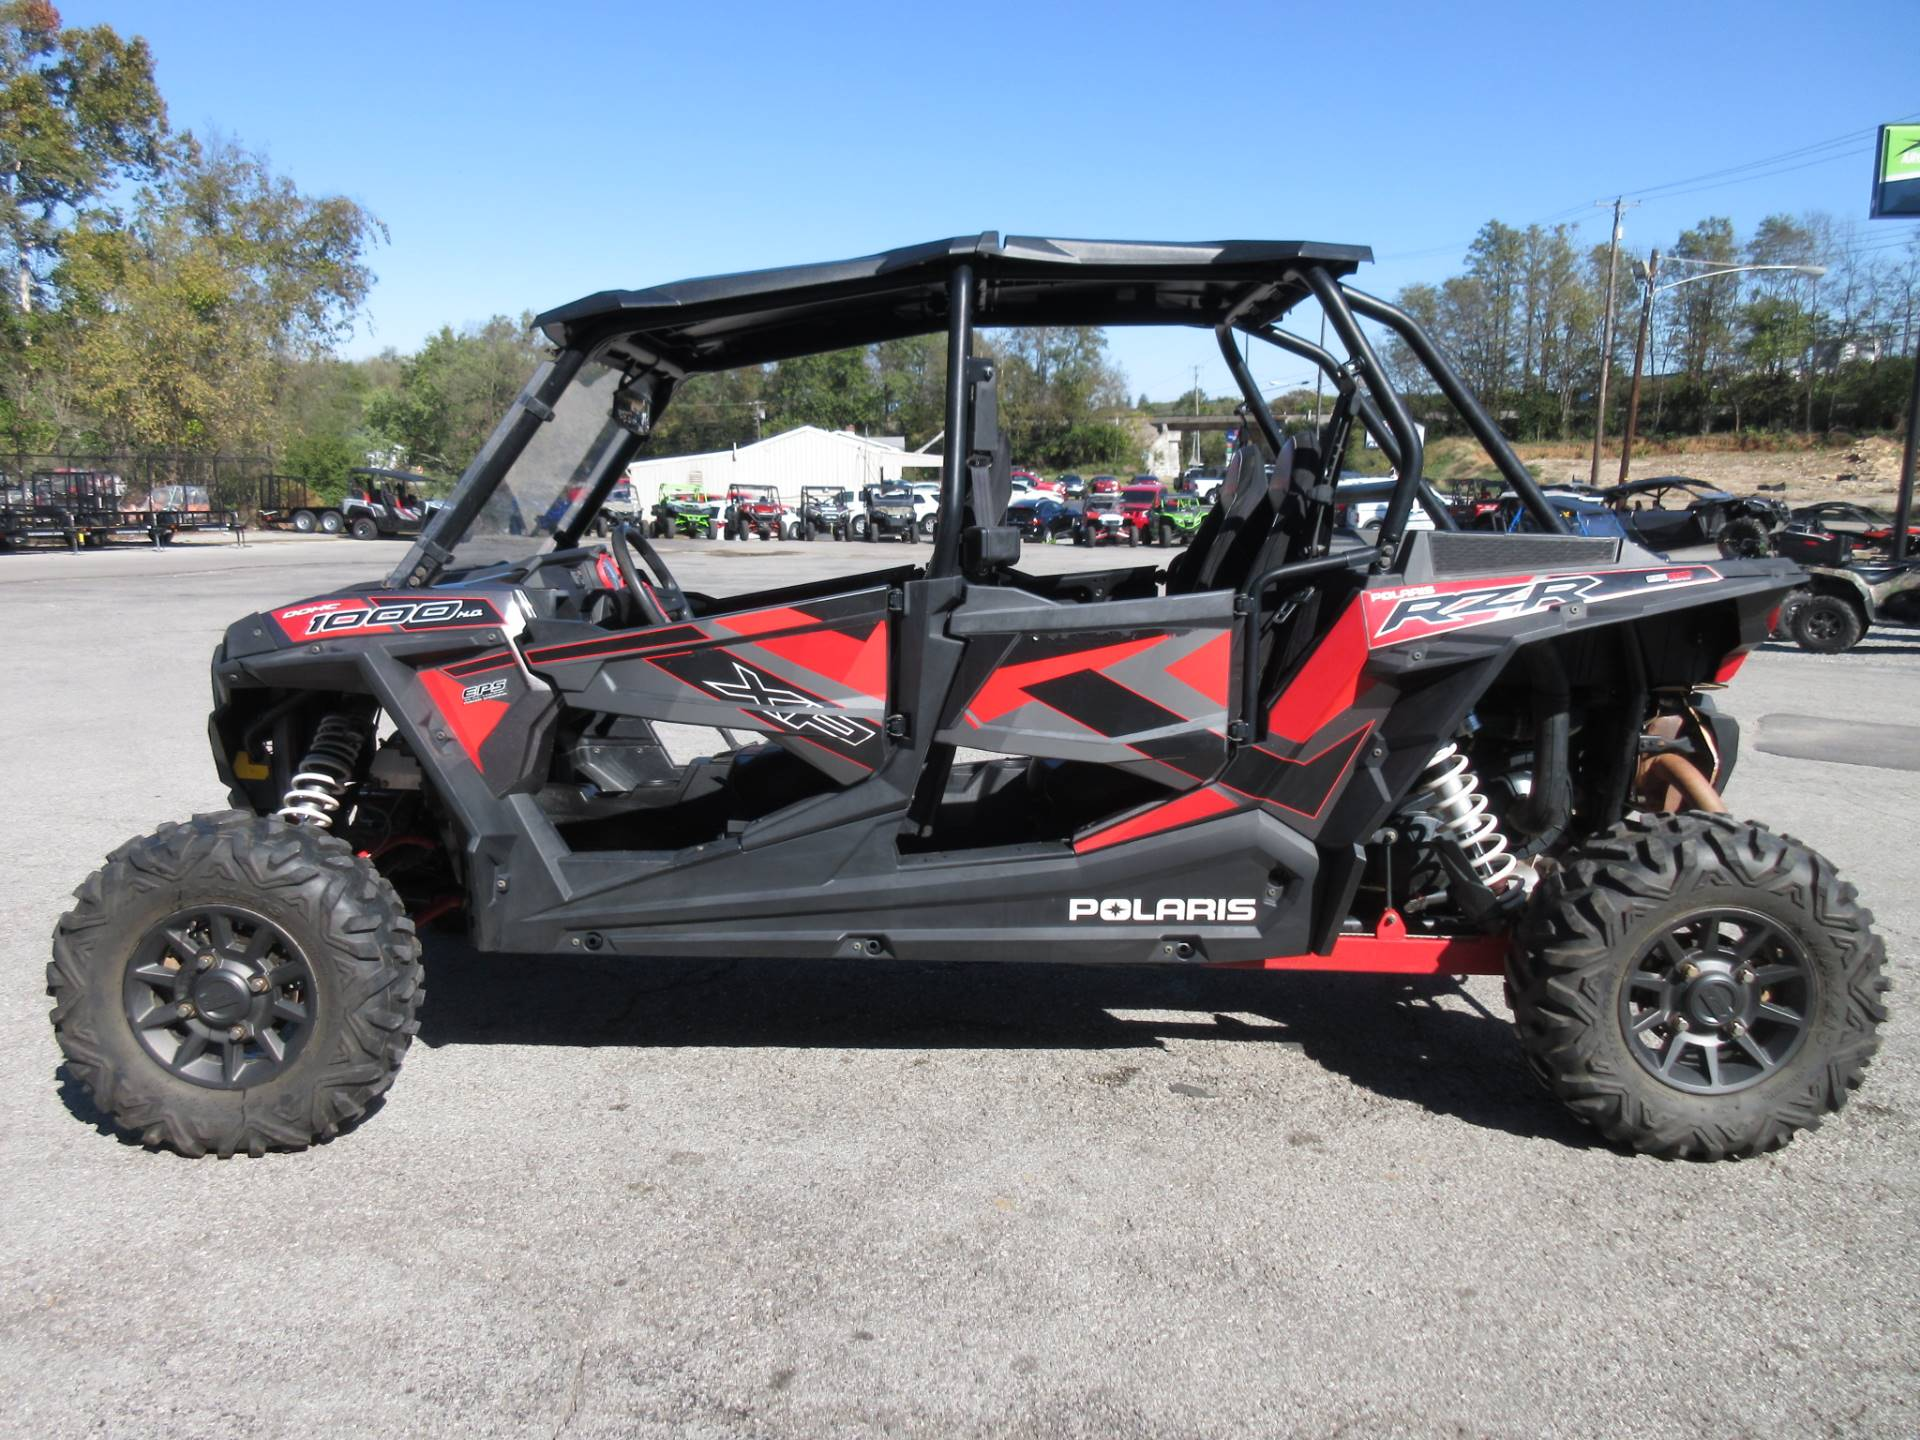 2017 Polaris RZR XP 4 1000 EPS in Georgetown, Kentucky - Photo 5